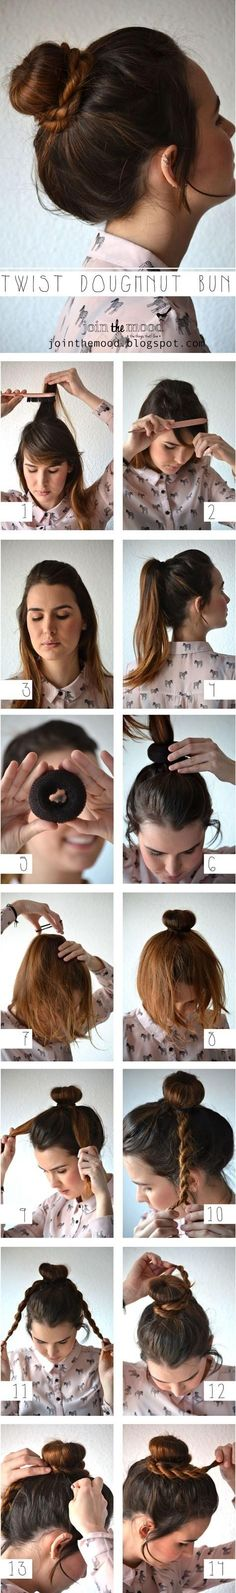 SHORT/THIN HAIR Bun--do as a Low/Side/High bun. Use a sock bun or bun roll that matches Ur hair. The ends can be braided as shown or loosely wrapped around the bun &/or pinned around & into the center to hide the donut look. Or leave the ends down & curl them, or if Ur hair is naturally curly just wet them down & scrunch. Very cute